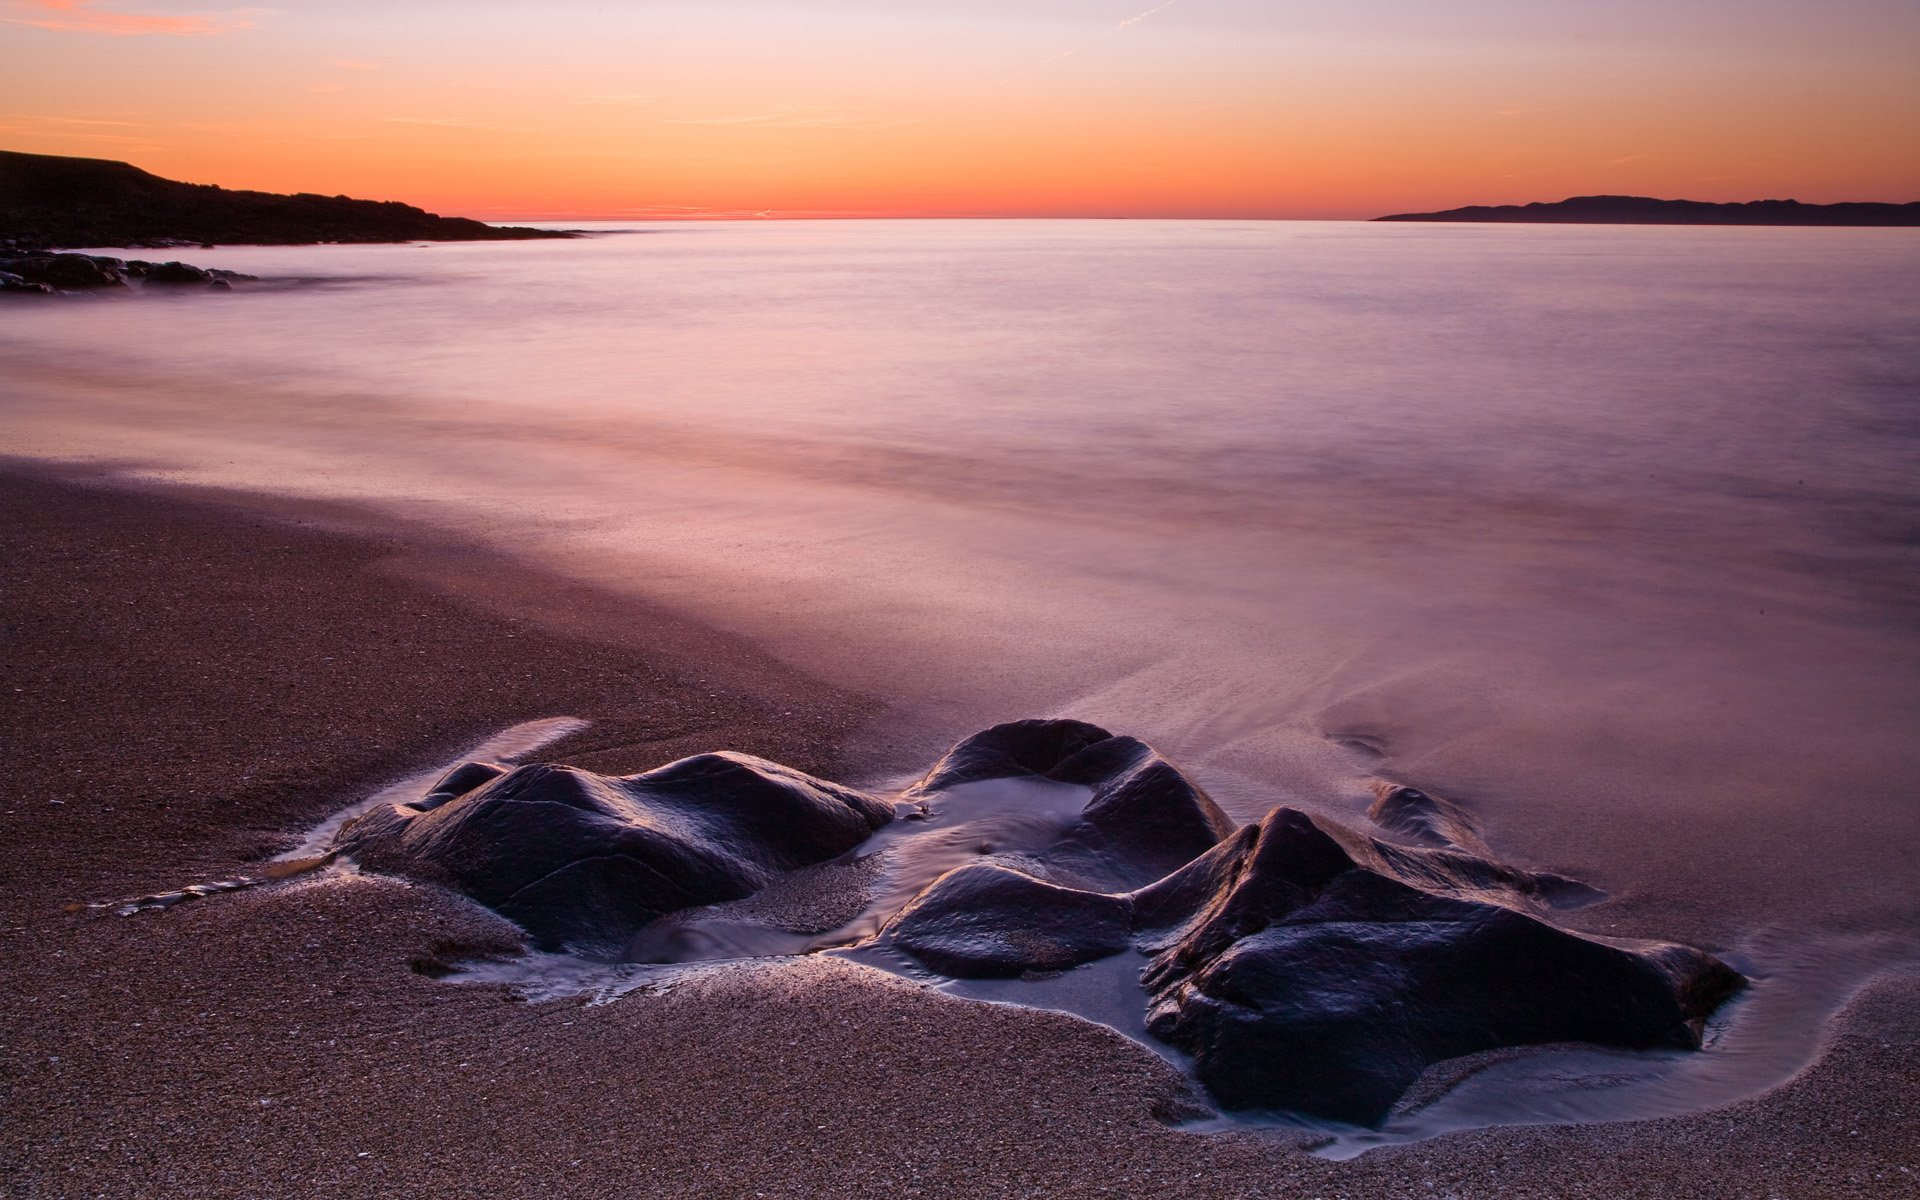 Sea And Rock Landscape At Dusk Backgrounds Widescreen and HD